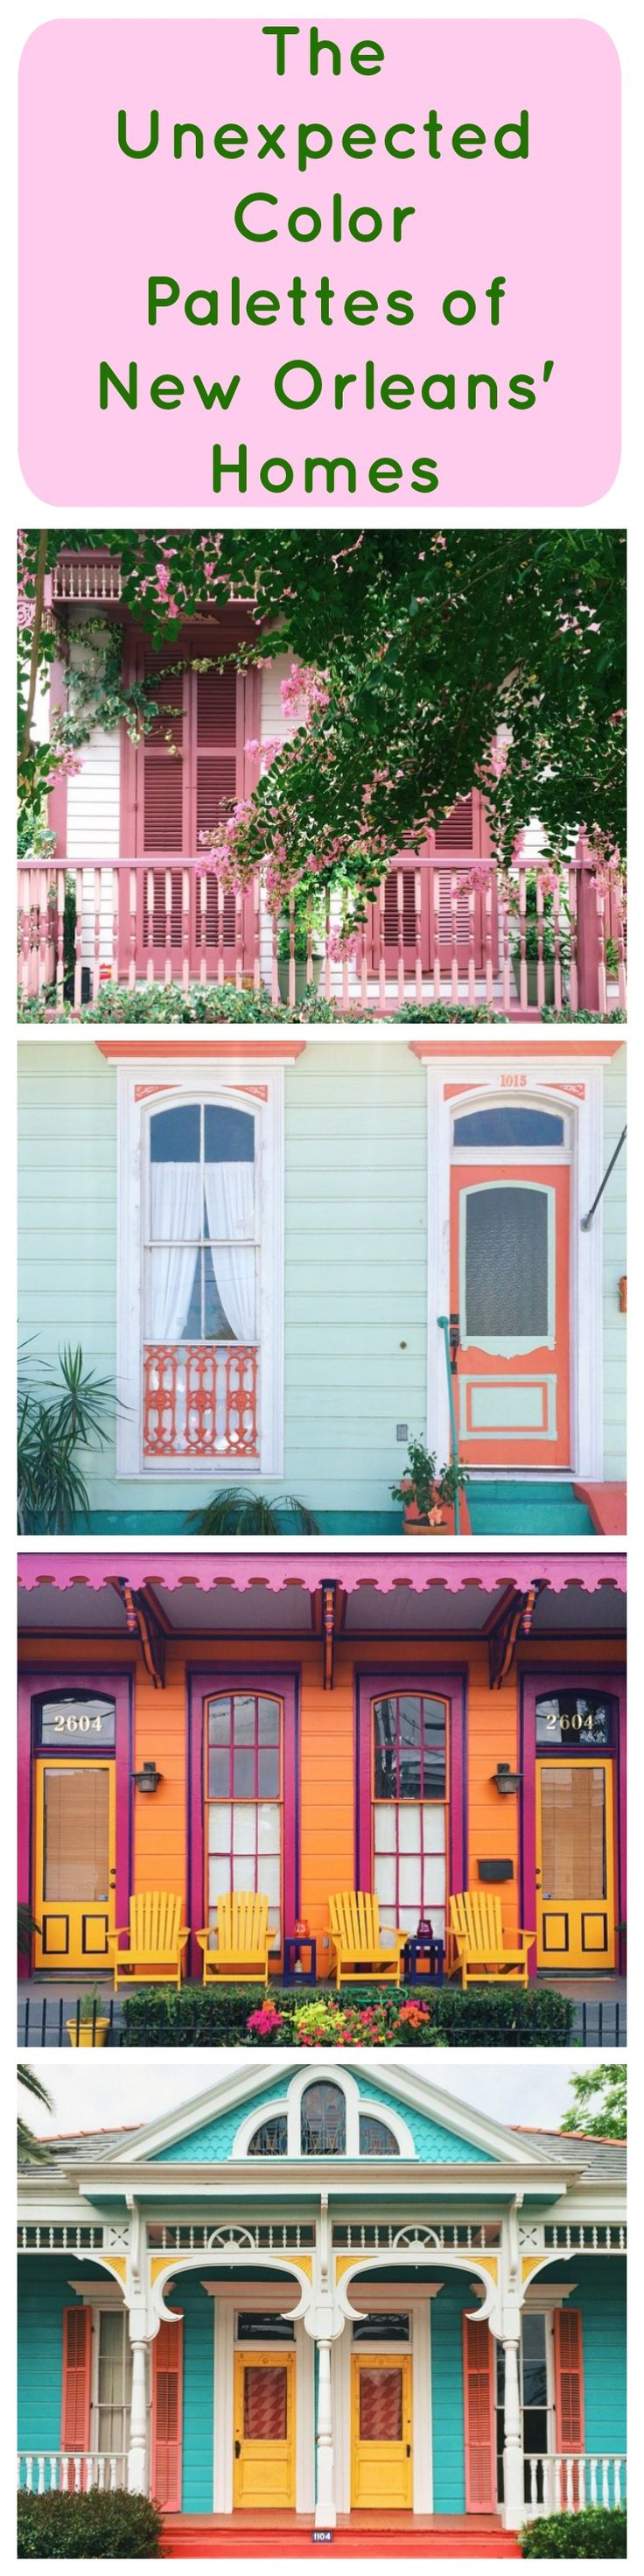 25 Best New Orleans Homes Ideas On Pinterest New Orleans Decor Nola New Orleans La And